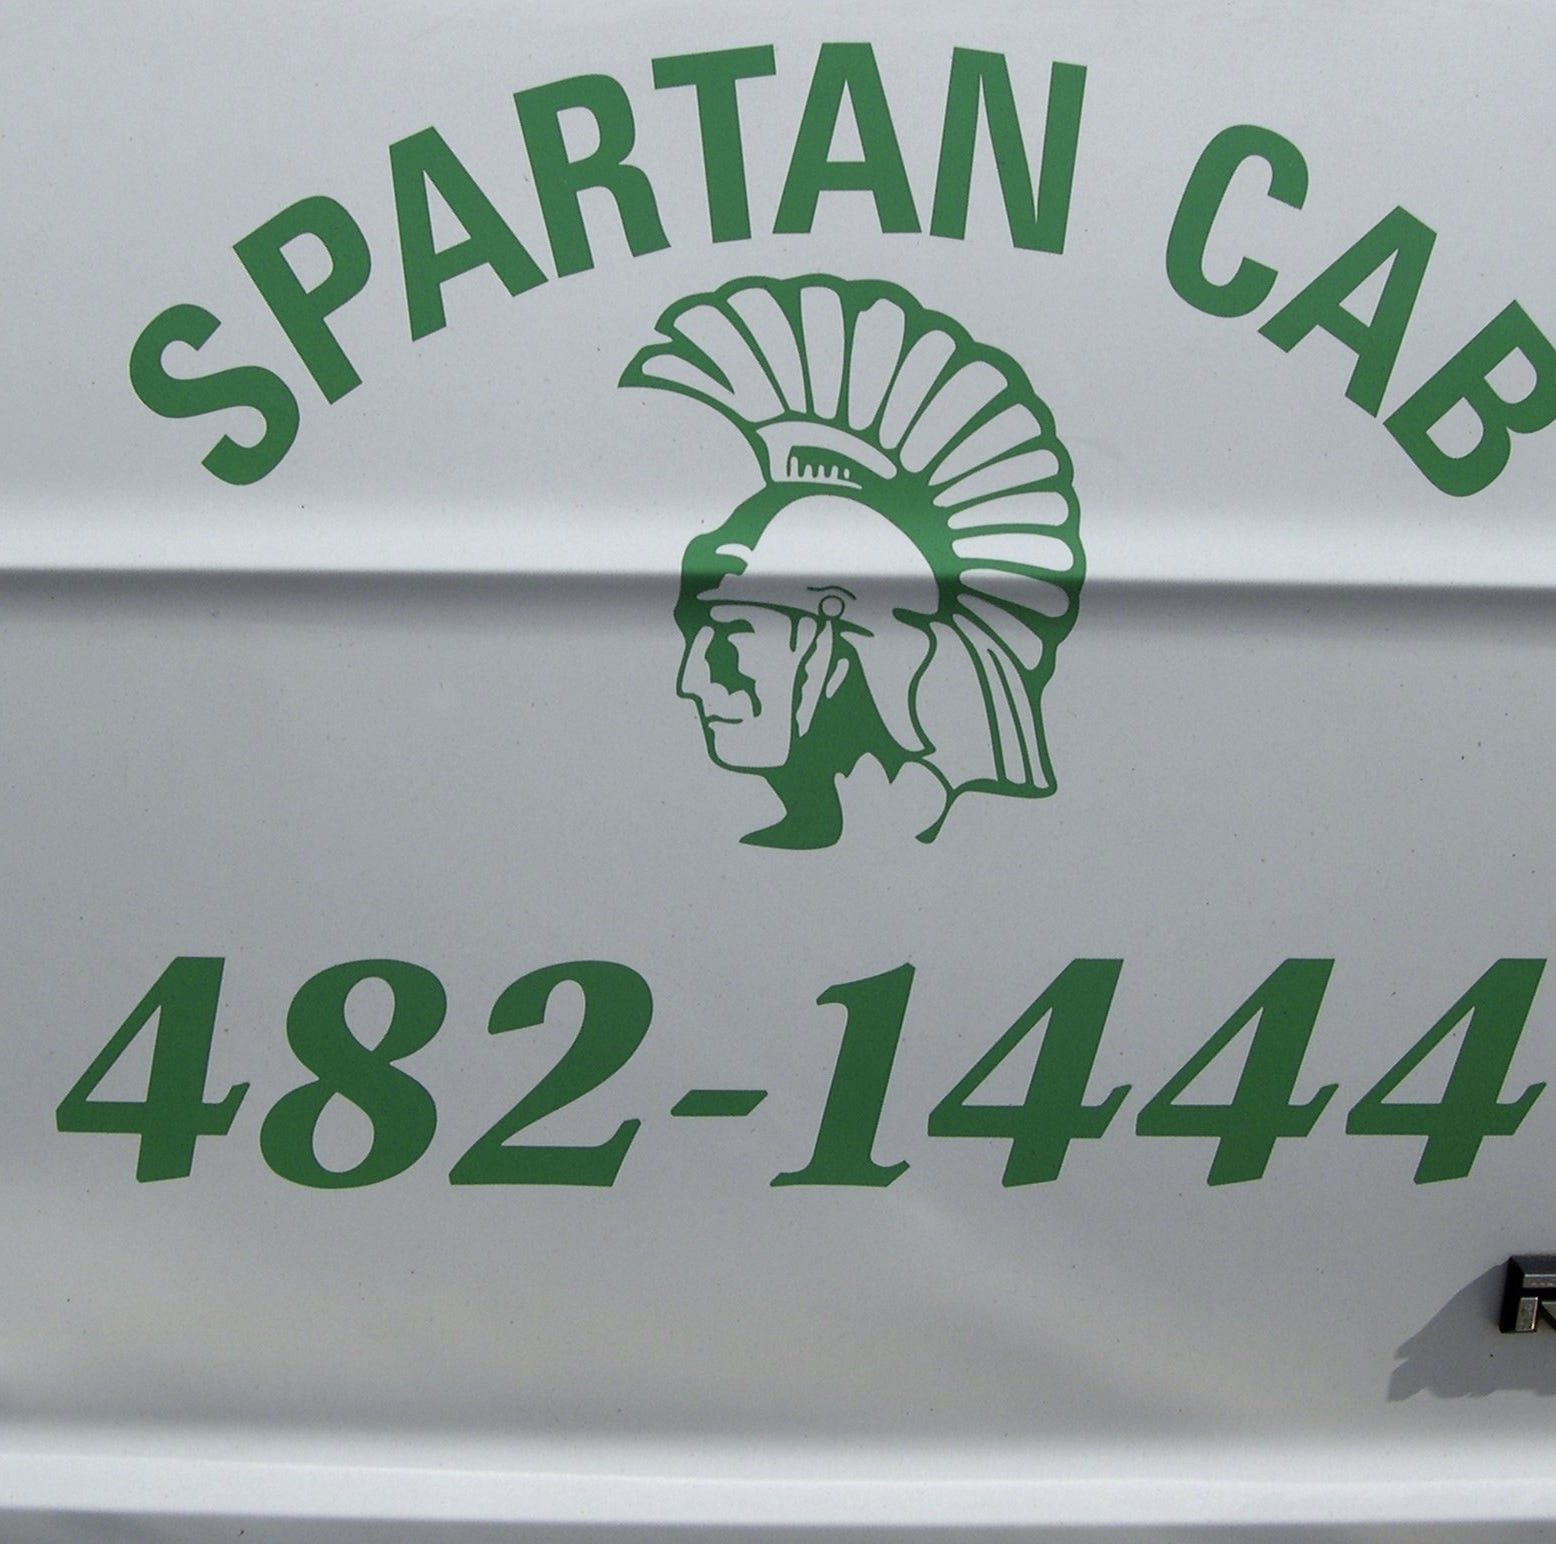 Spartan Yellow Cab ends service after 72-year history in Lansing